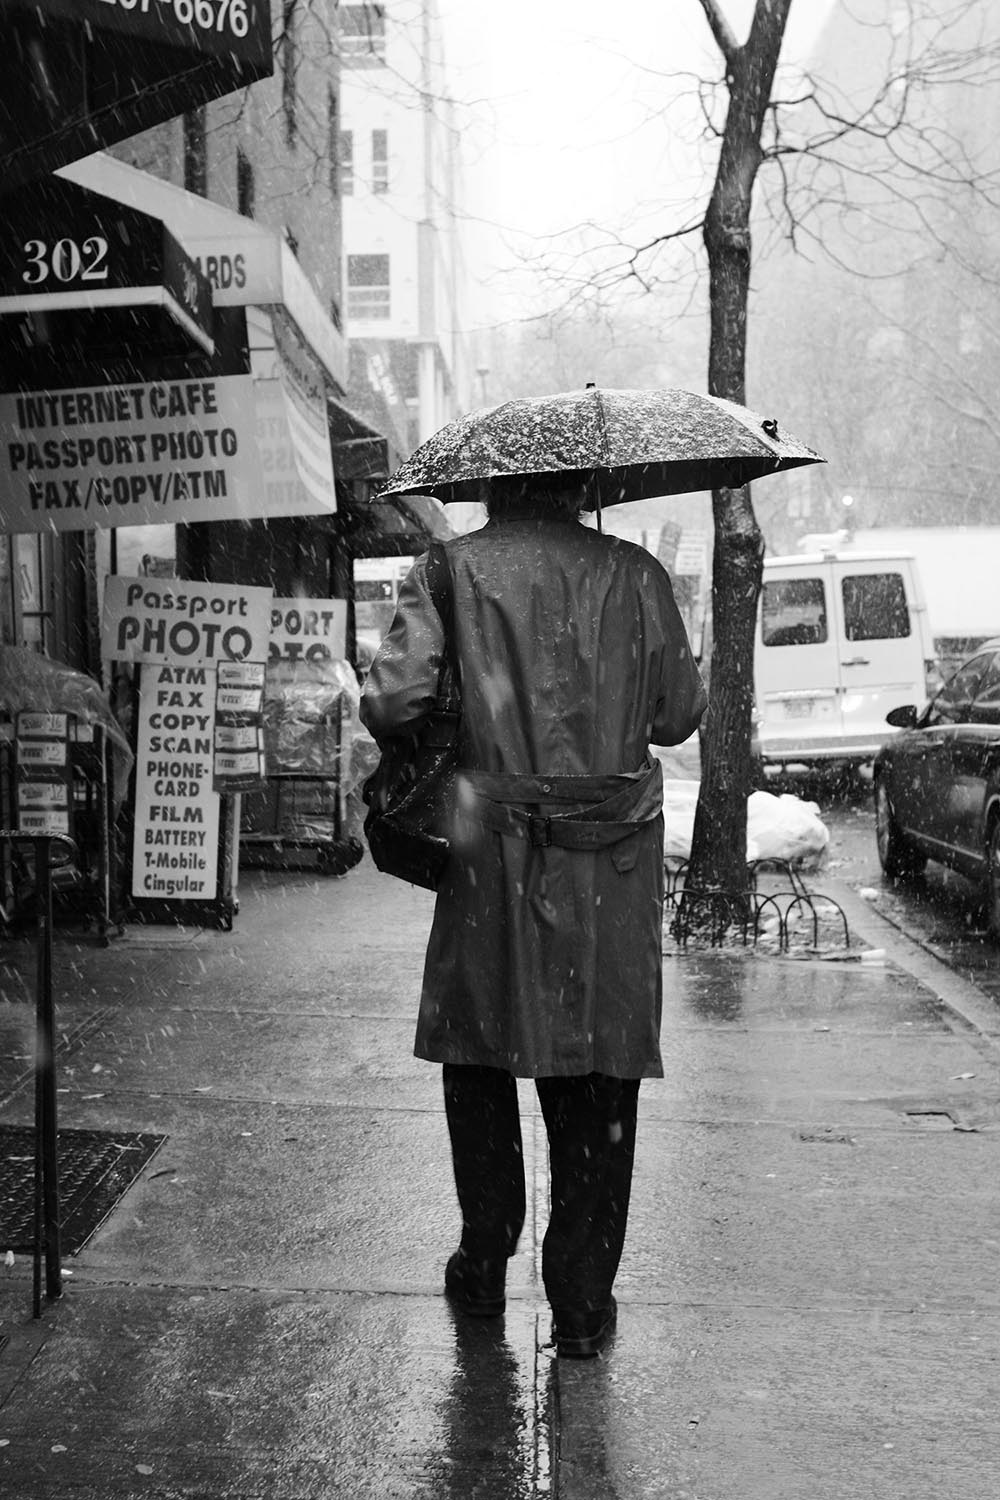 Black and white photo of a drenched man in a trenchcoat walking in the snow.